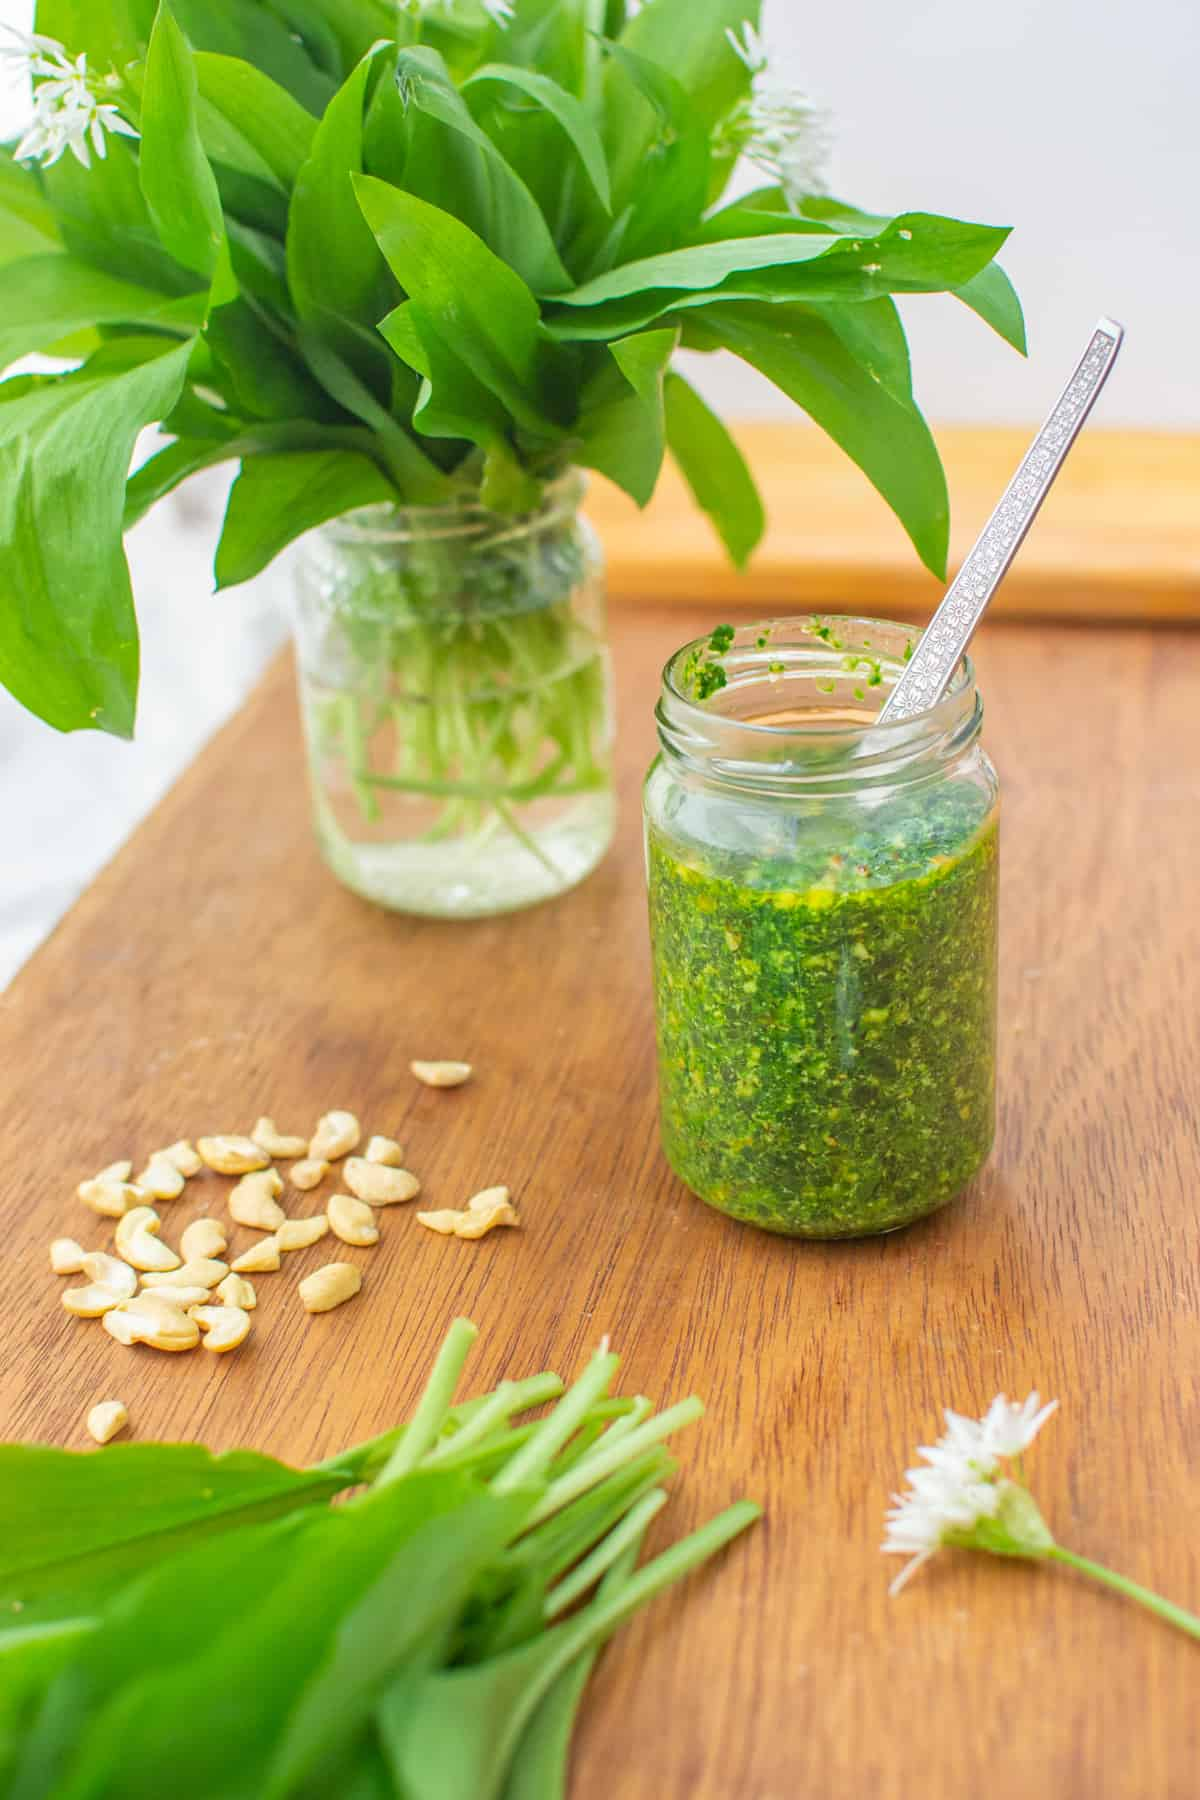 A jar of pesto with a spoon in it, standing in between some wild garlic in a jar with water and some leaves on the table. Some cashew nuts are scattered besides the jar.